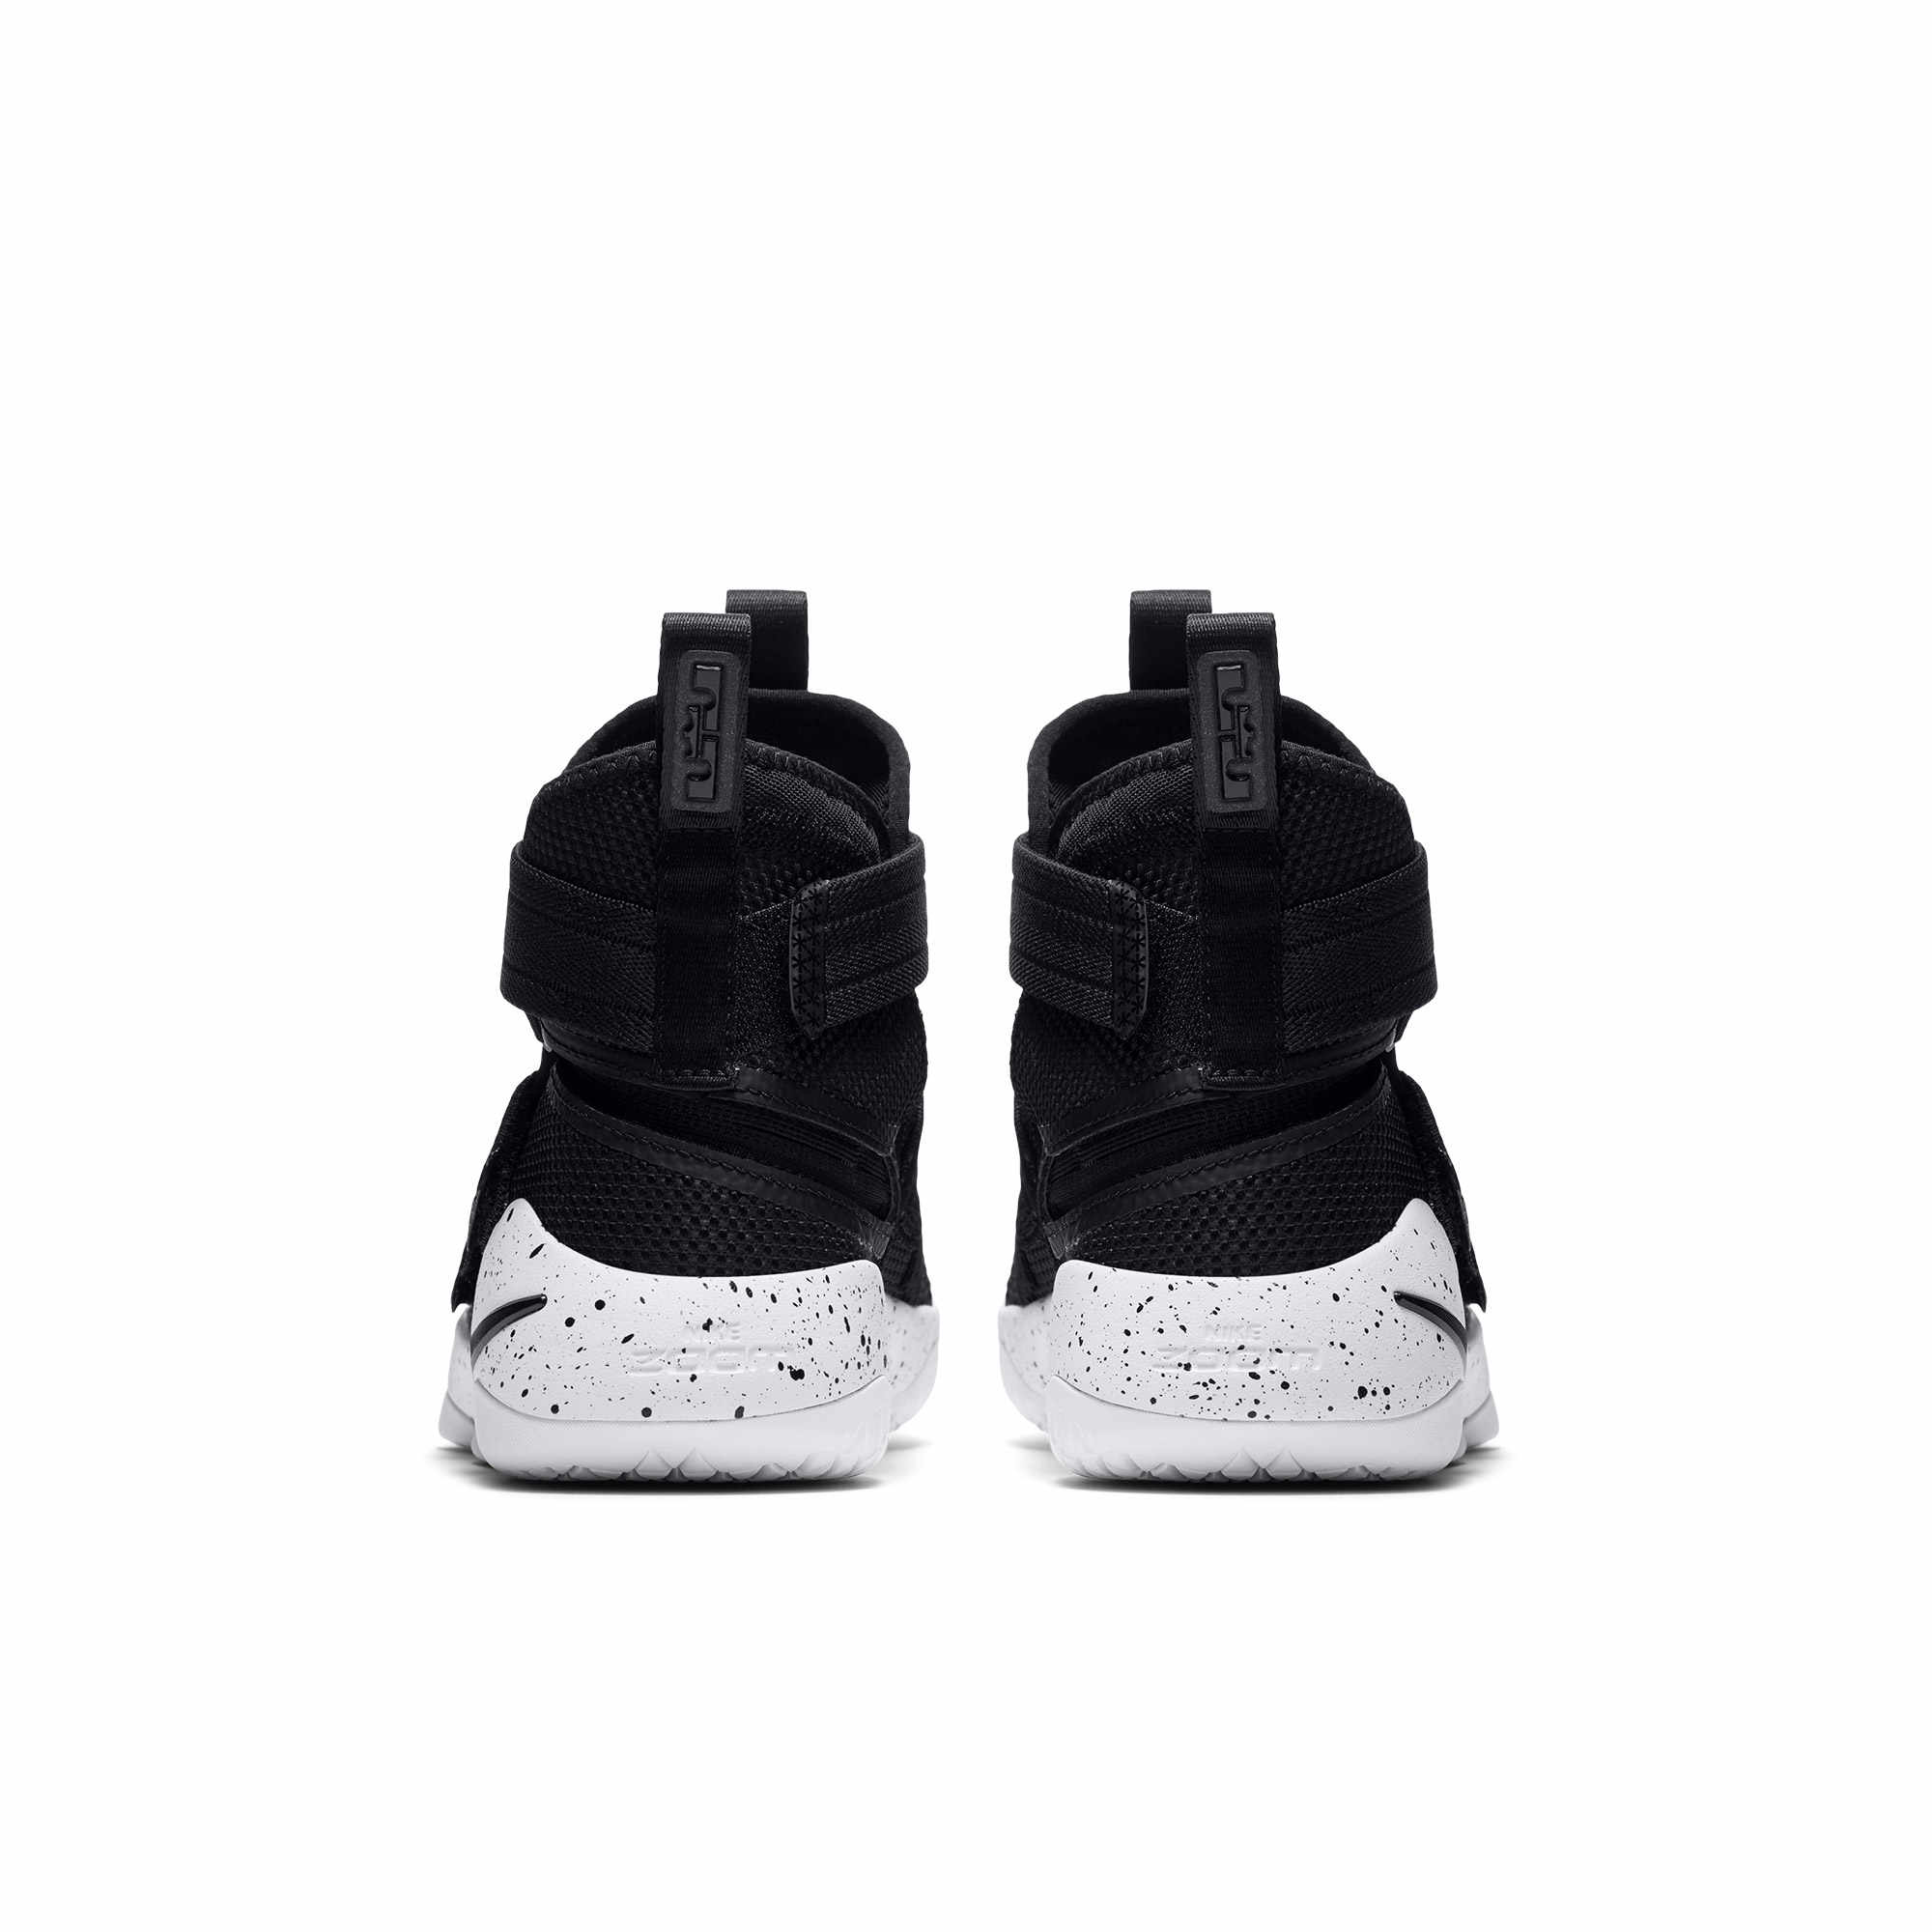 online store 45c98 86b1a ... NIKE LEBRON SOLDIER XI FLYEASE (GS) KIDS New Arrival Original  Breathable Anti-Slippery